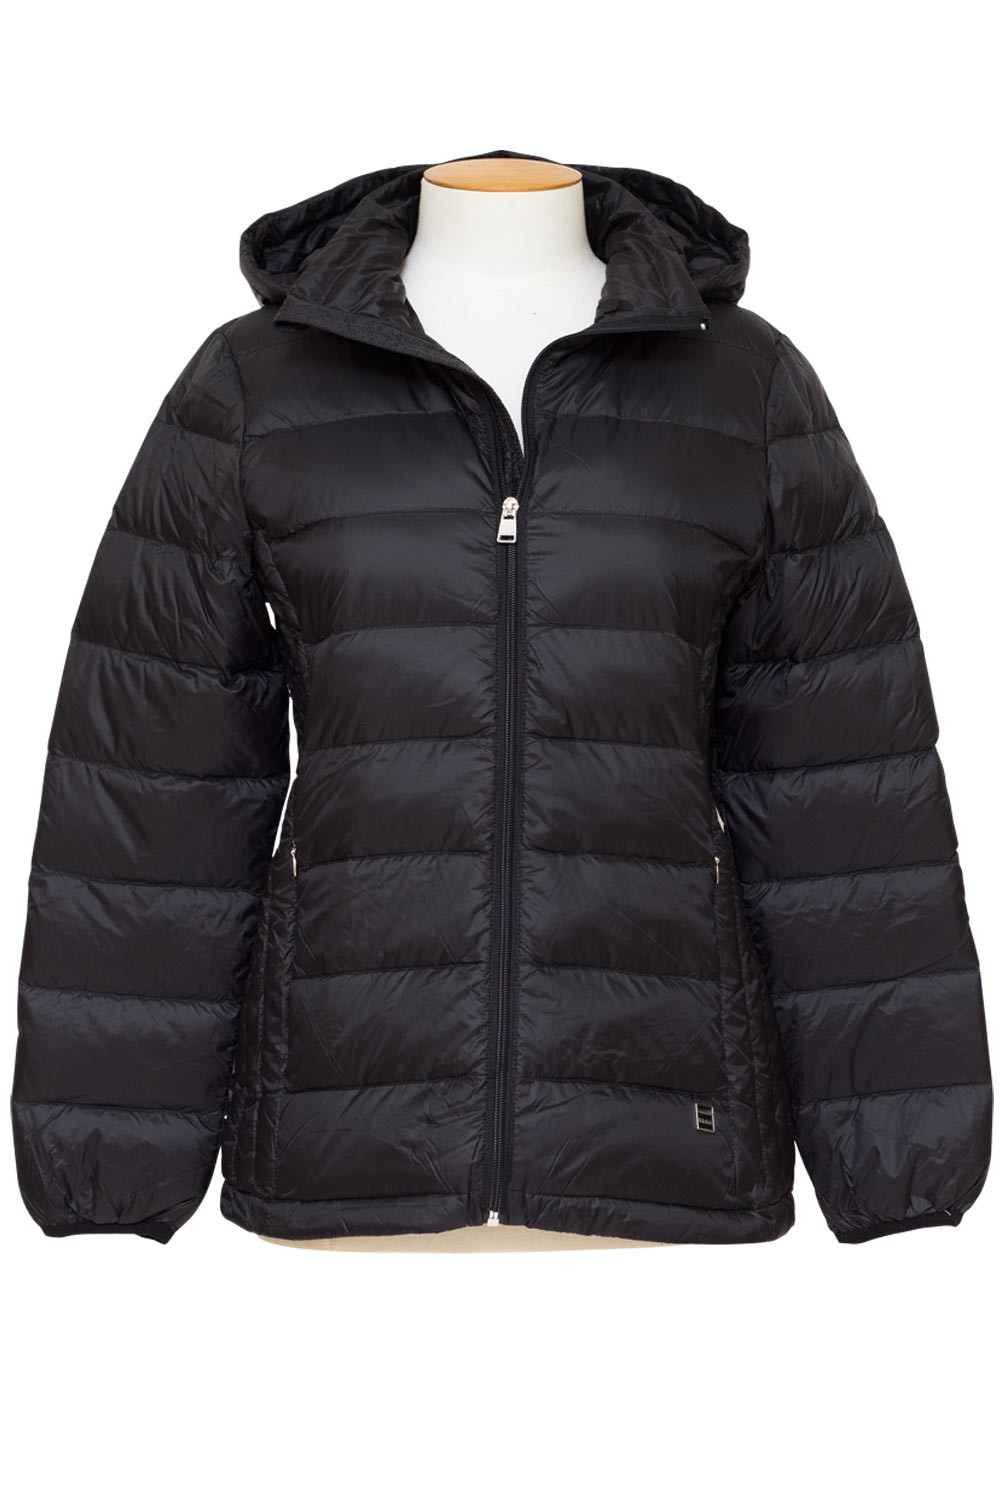 Moke - MKLPD-W19027 Lynn Pack Down Jacket